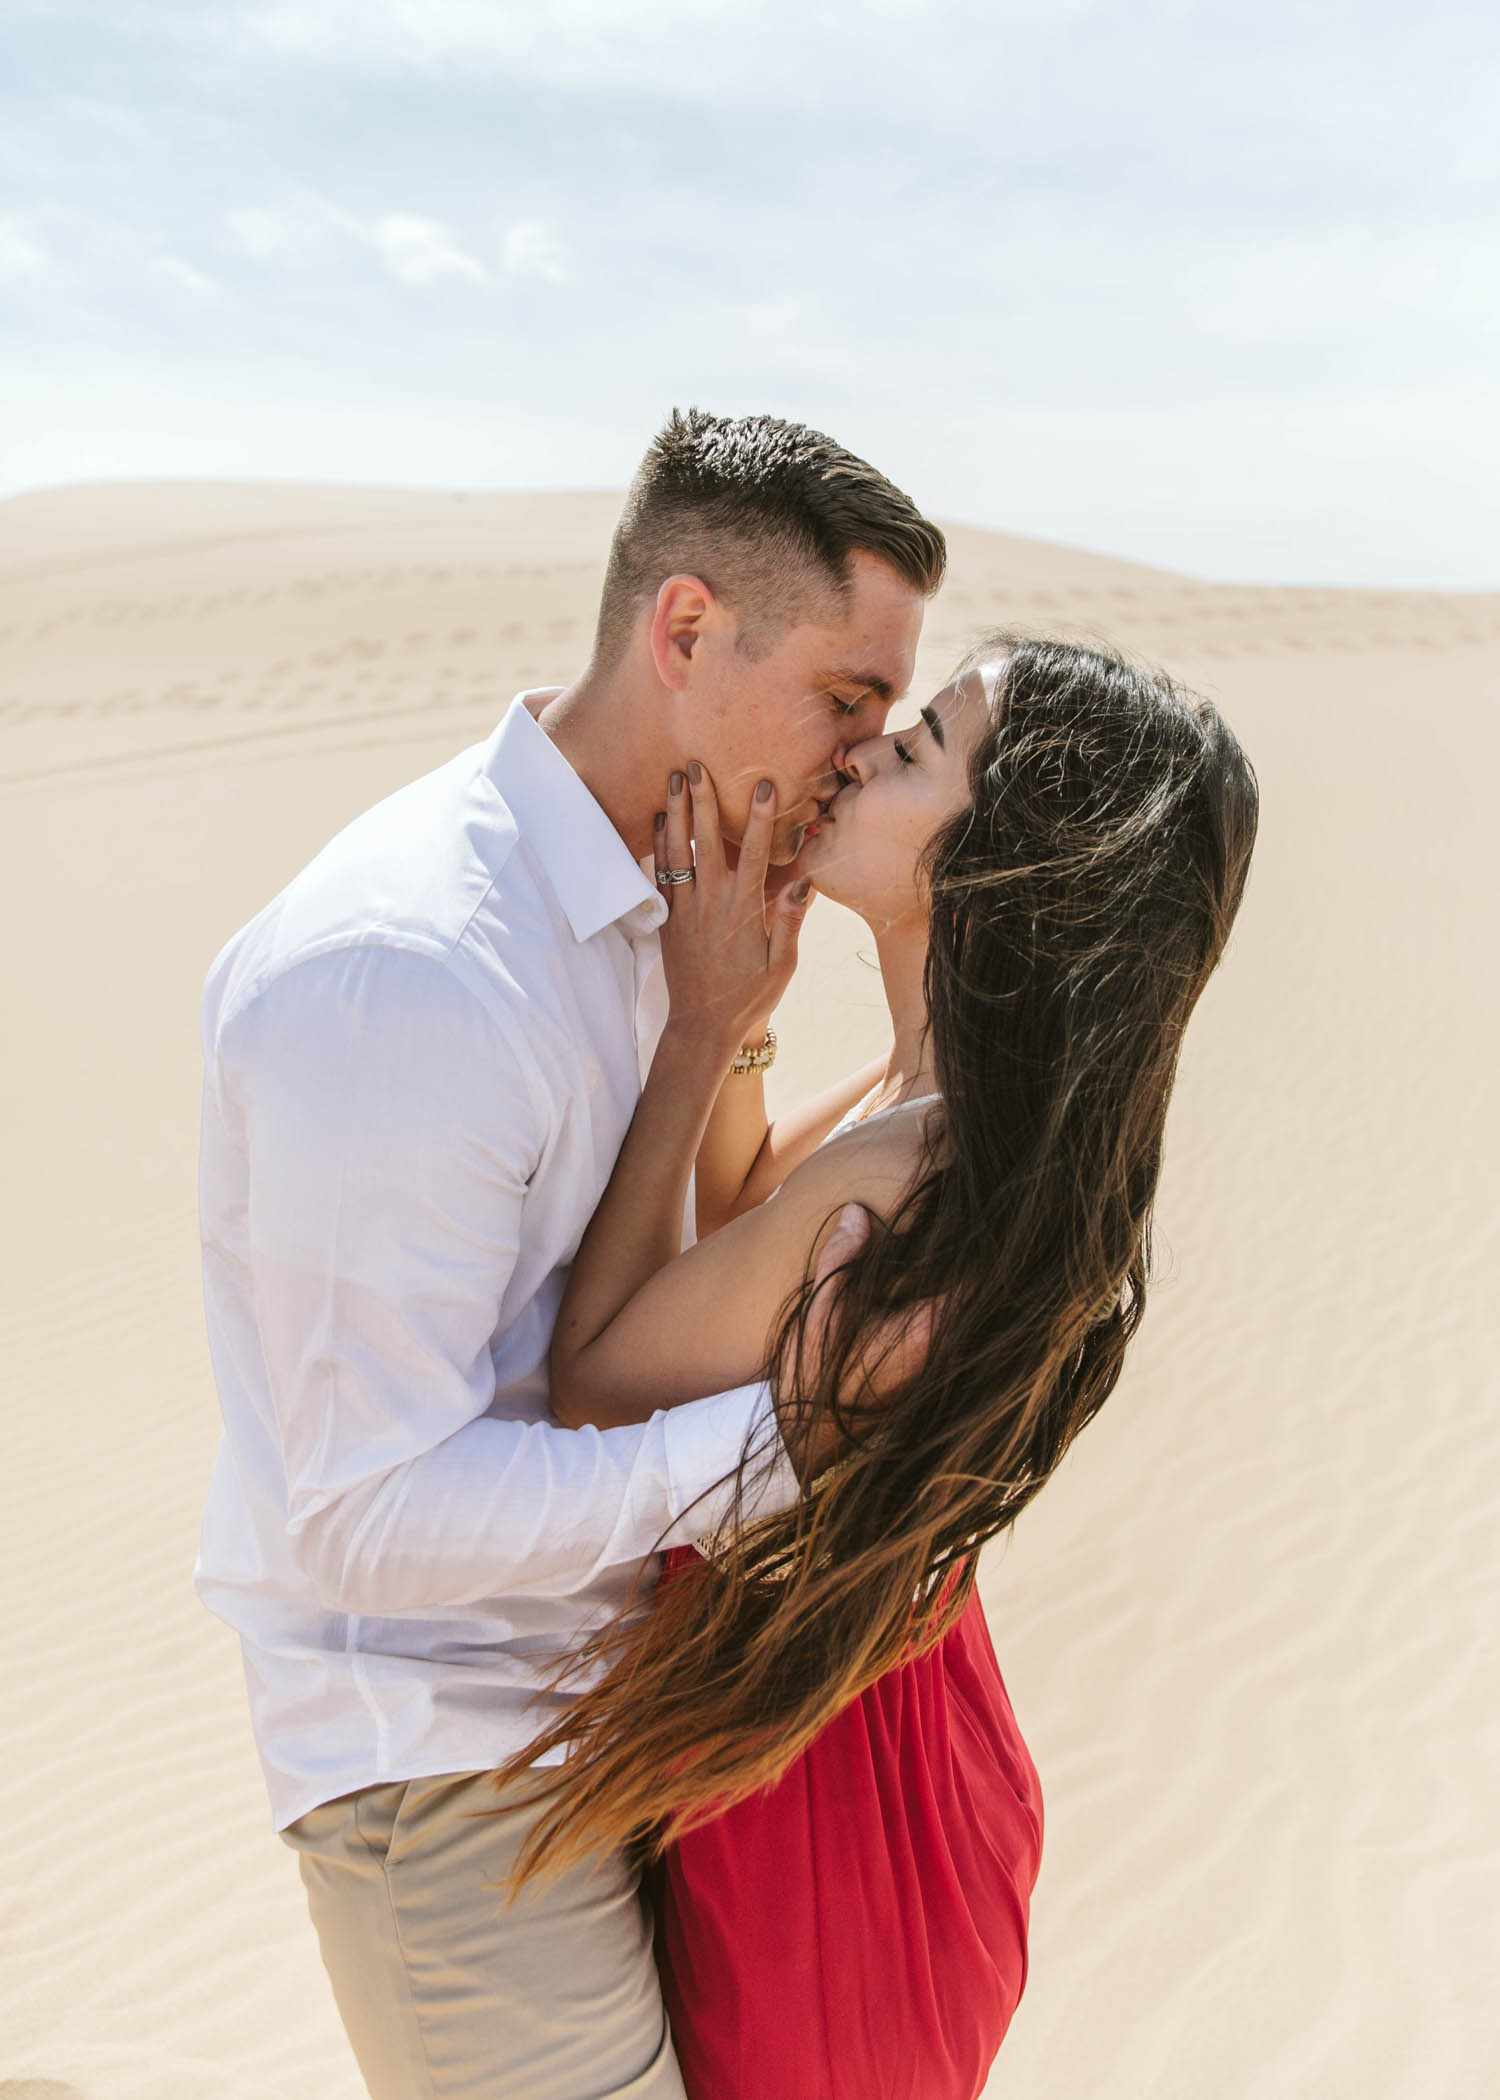 glamis_sand_dunes_couples_session_09.jpg